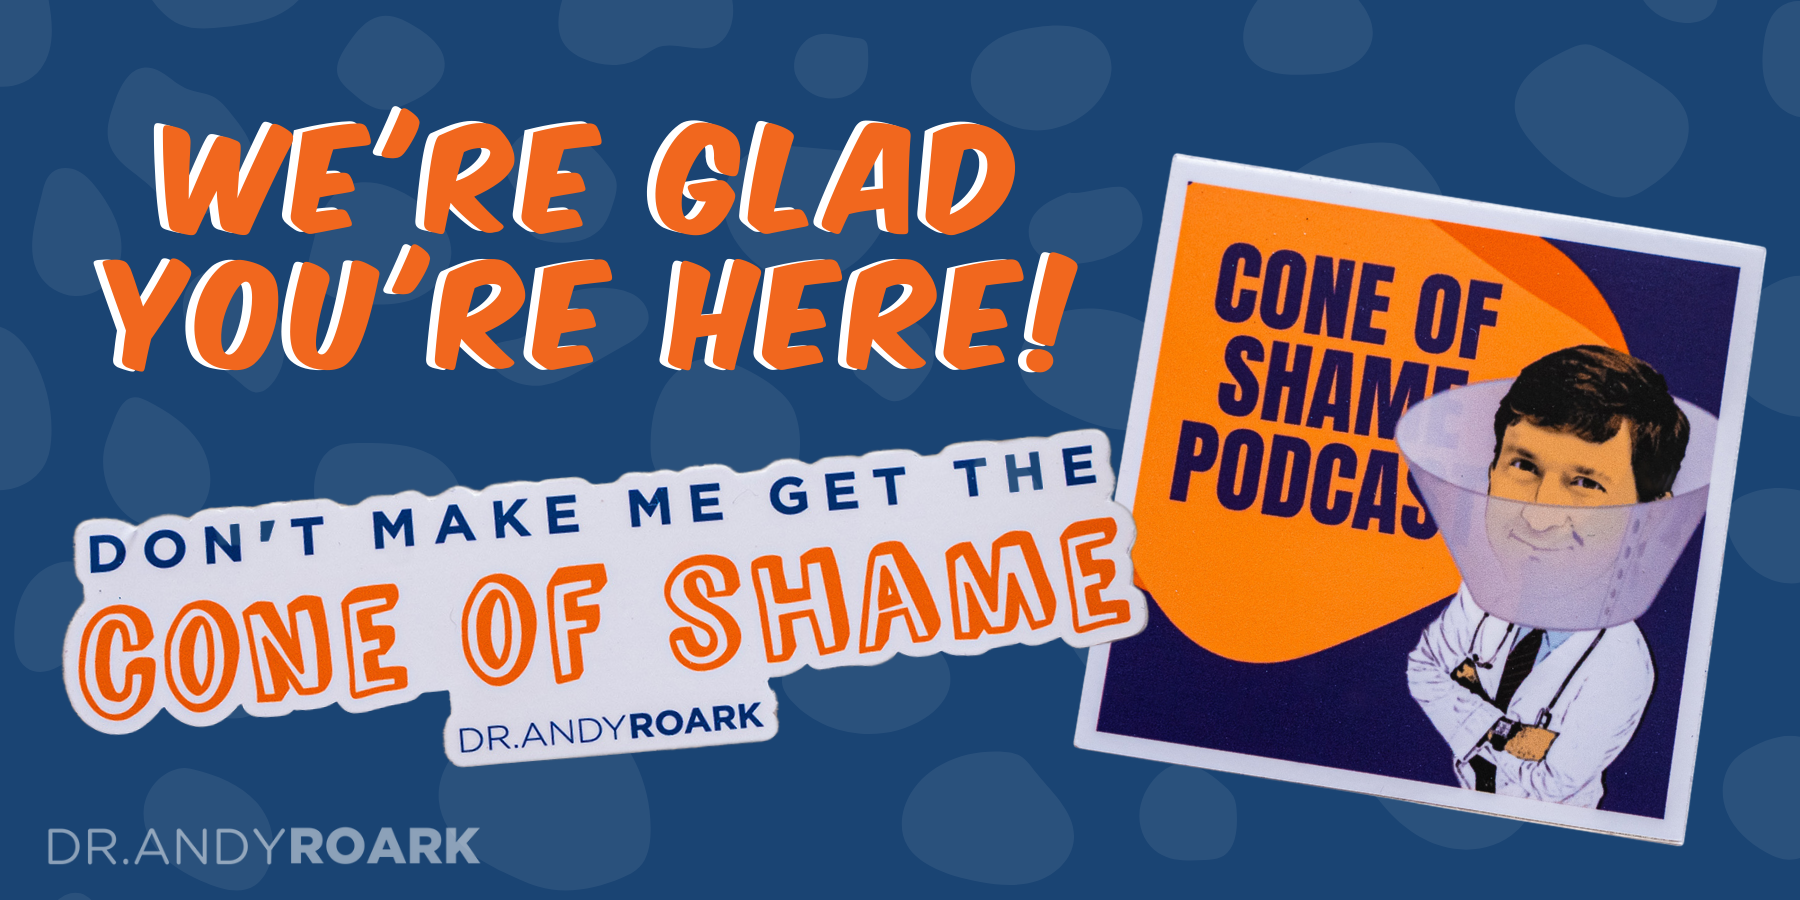 We're Glad You're Here! Photos of Cone of Shame Stickers